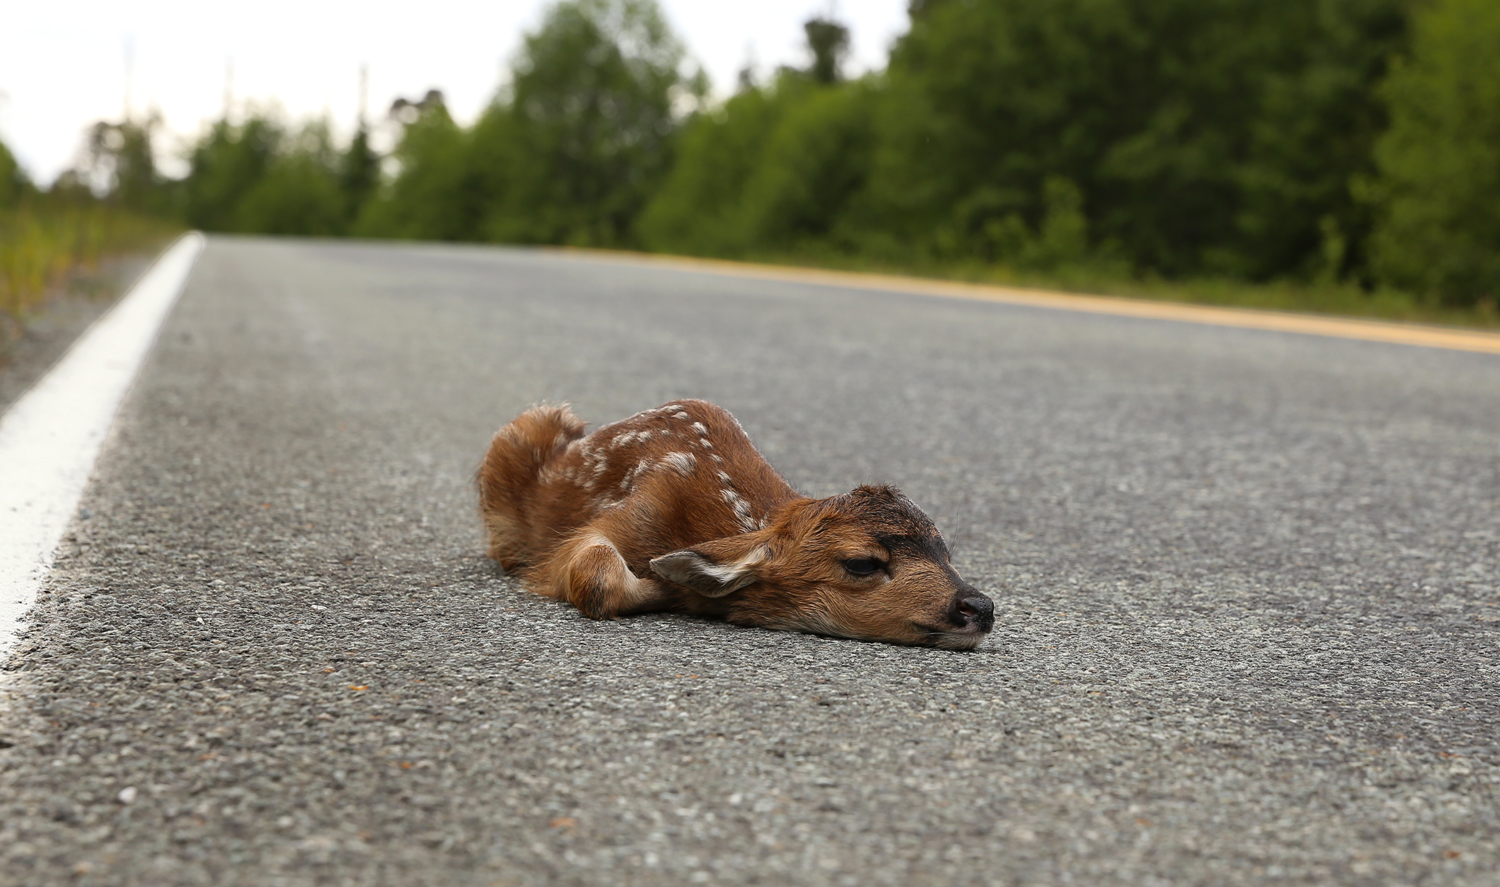 This baby is doing fine. Mama Deer will be back and collect her up in a few minutes.